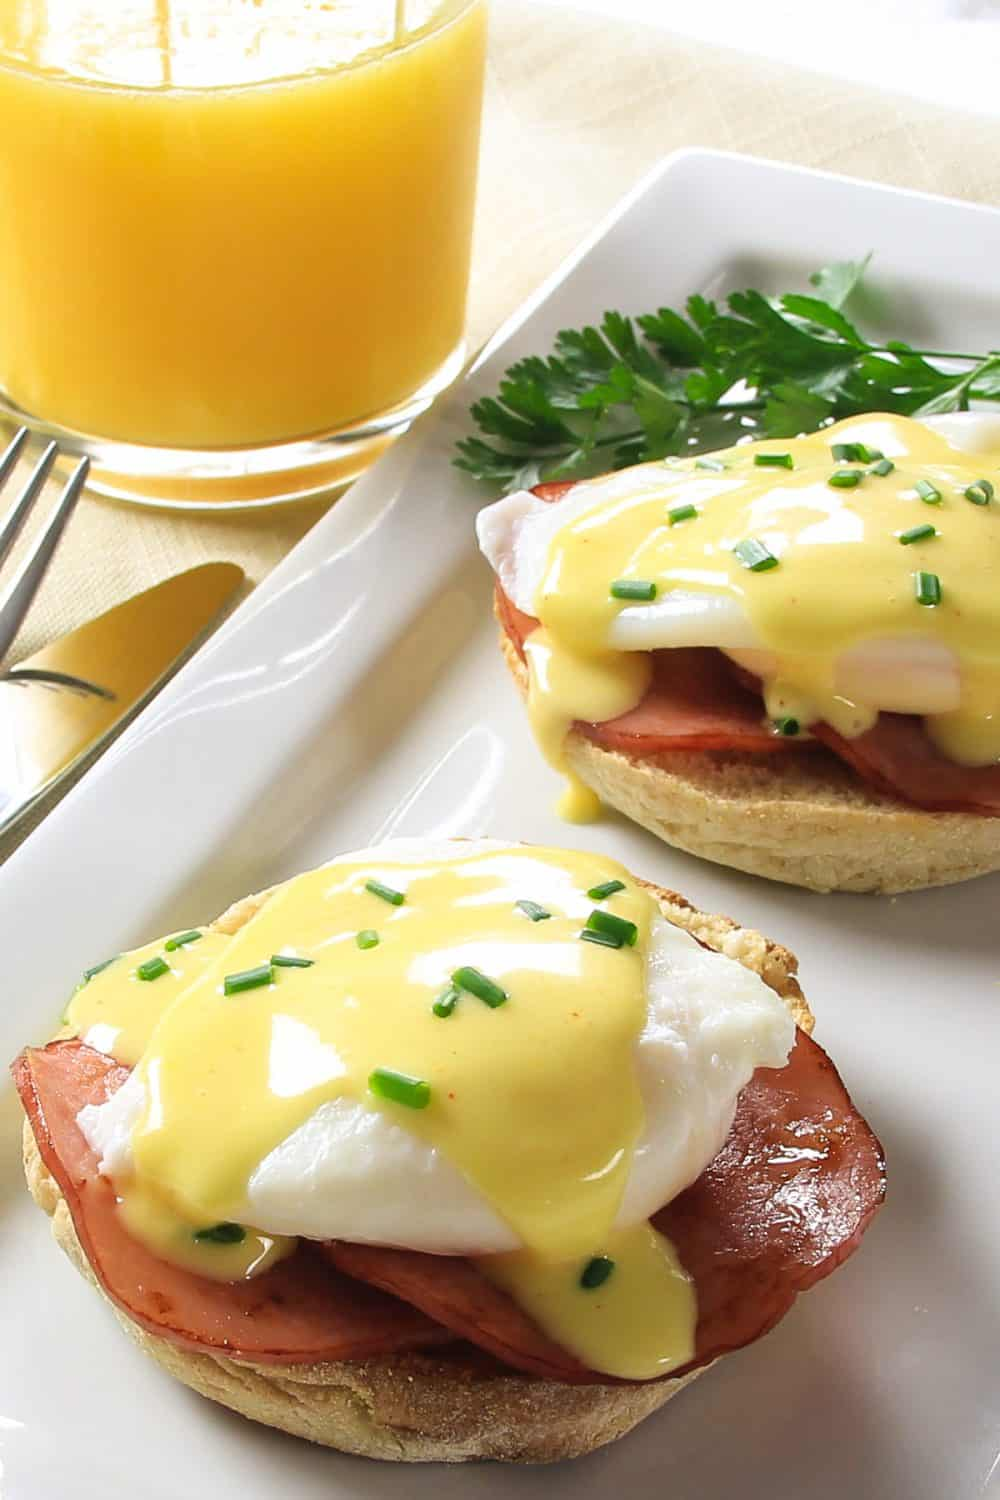 eggs Benedict on a white plate with a glass cup of orange juice beside it